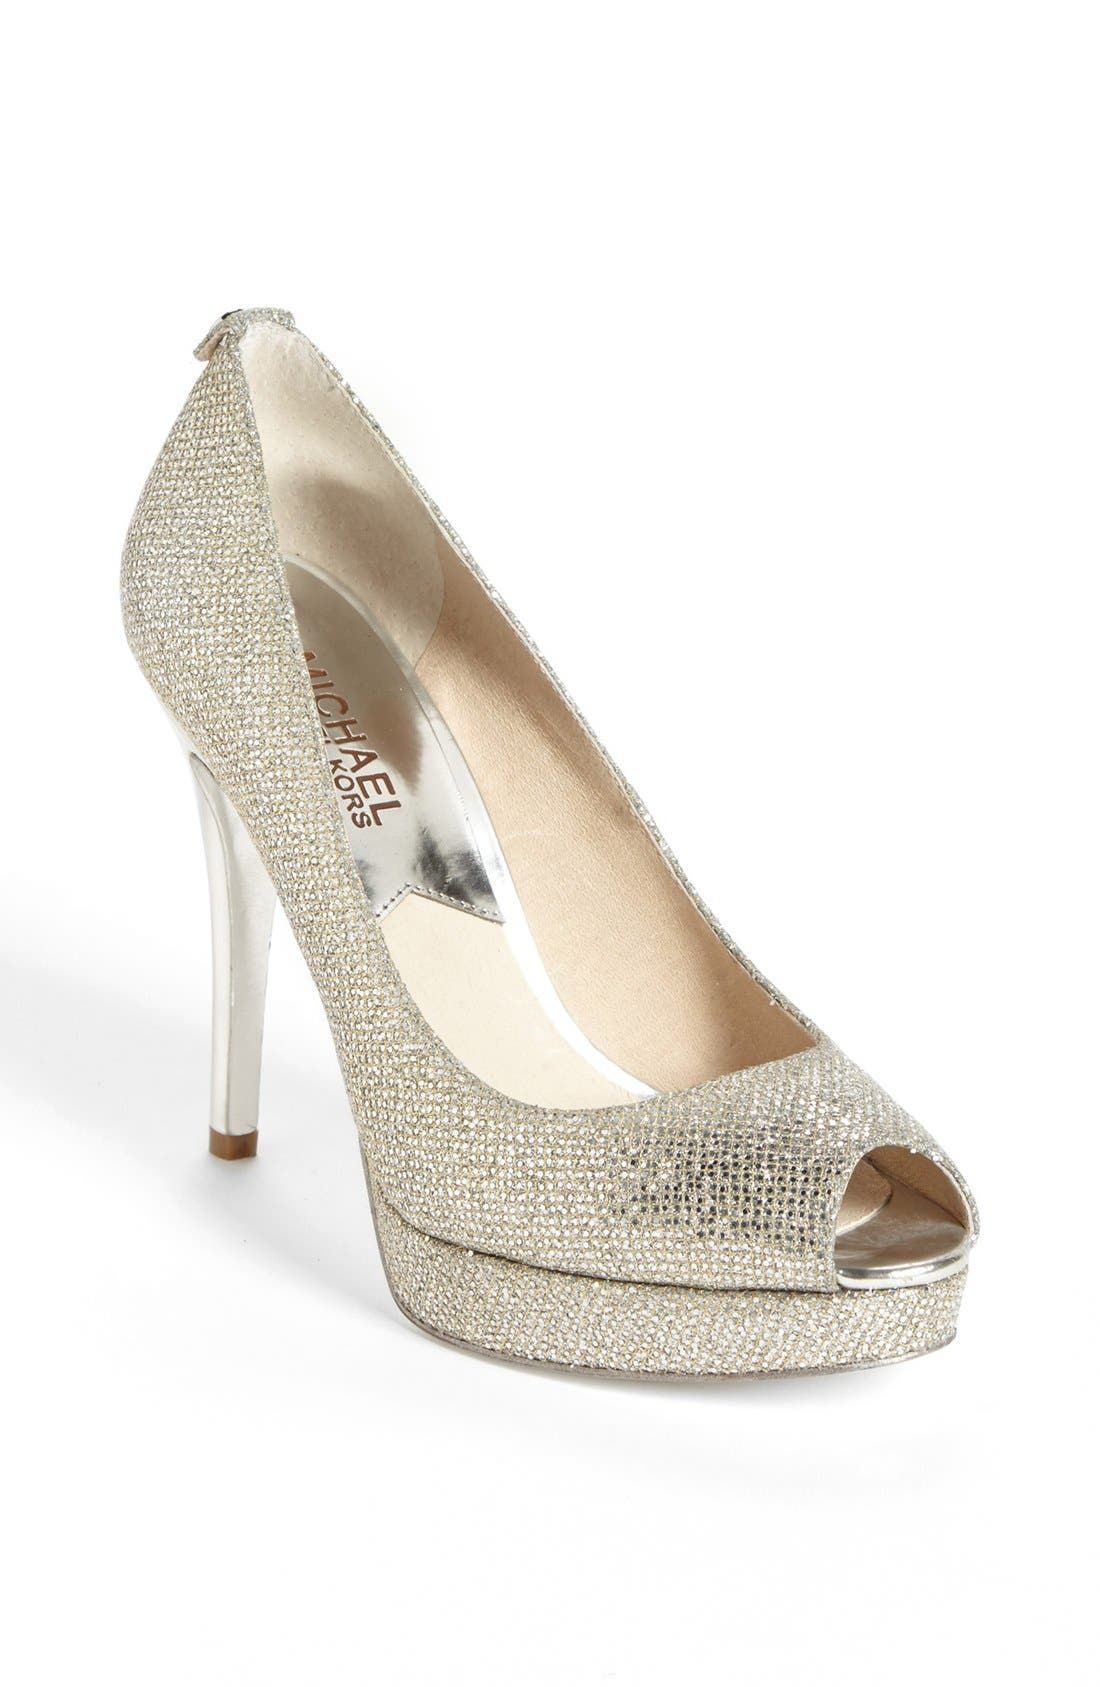 'York' Platform Pump,                             Main thumbnail 1, color,                             Silver